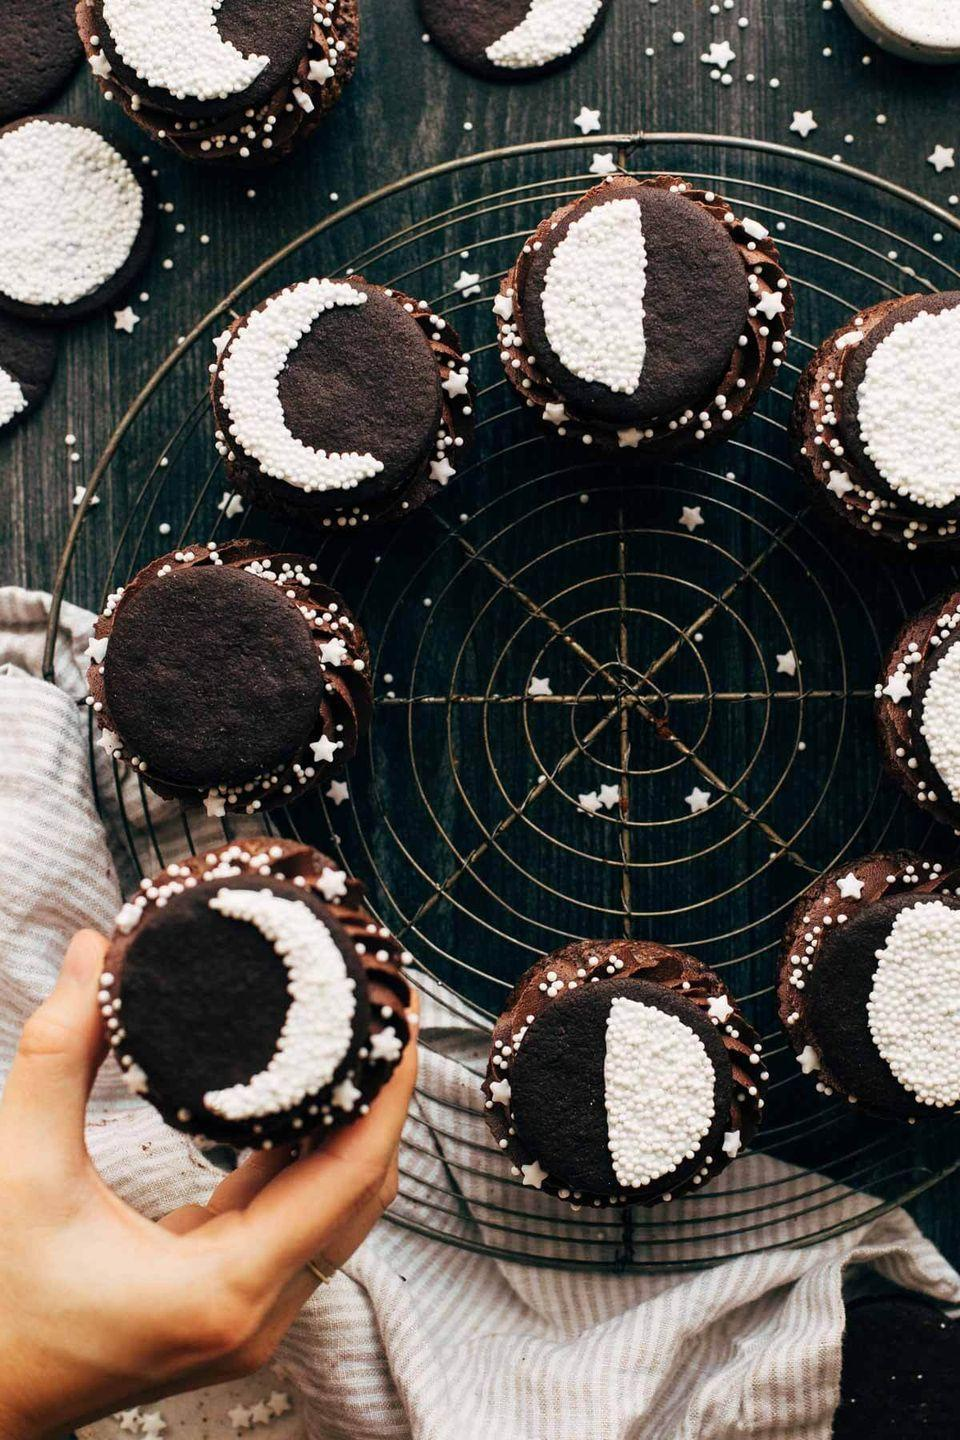 """<p>Can't decide between brownies and cupcakes? Have both!</p><p><em><a href=""""https://butternutbakeryblog.com/brownie-cupcakes/"""" rel=""""nofollow noopener"""" target=""""_blank"""" data-ylk=""""slk:Get the recipe from Butternut Bakery Blog »"""" class=""""link rapid-noclick-resp"""">Get the recipe from Butternut Bakery Blog »</a></em></p>"""